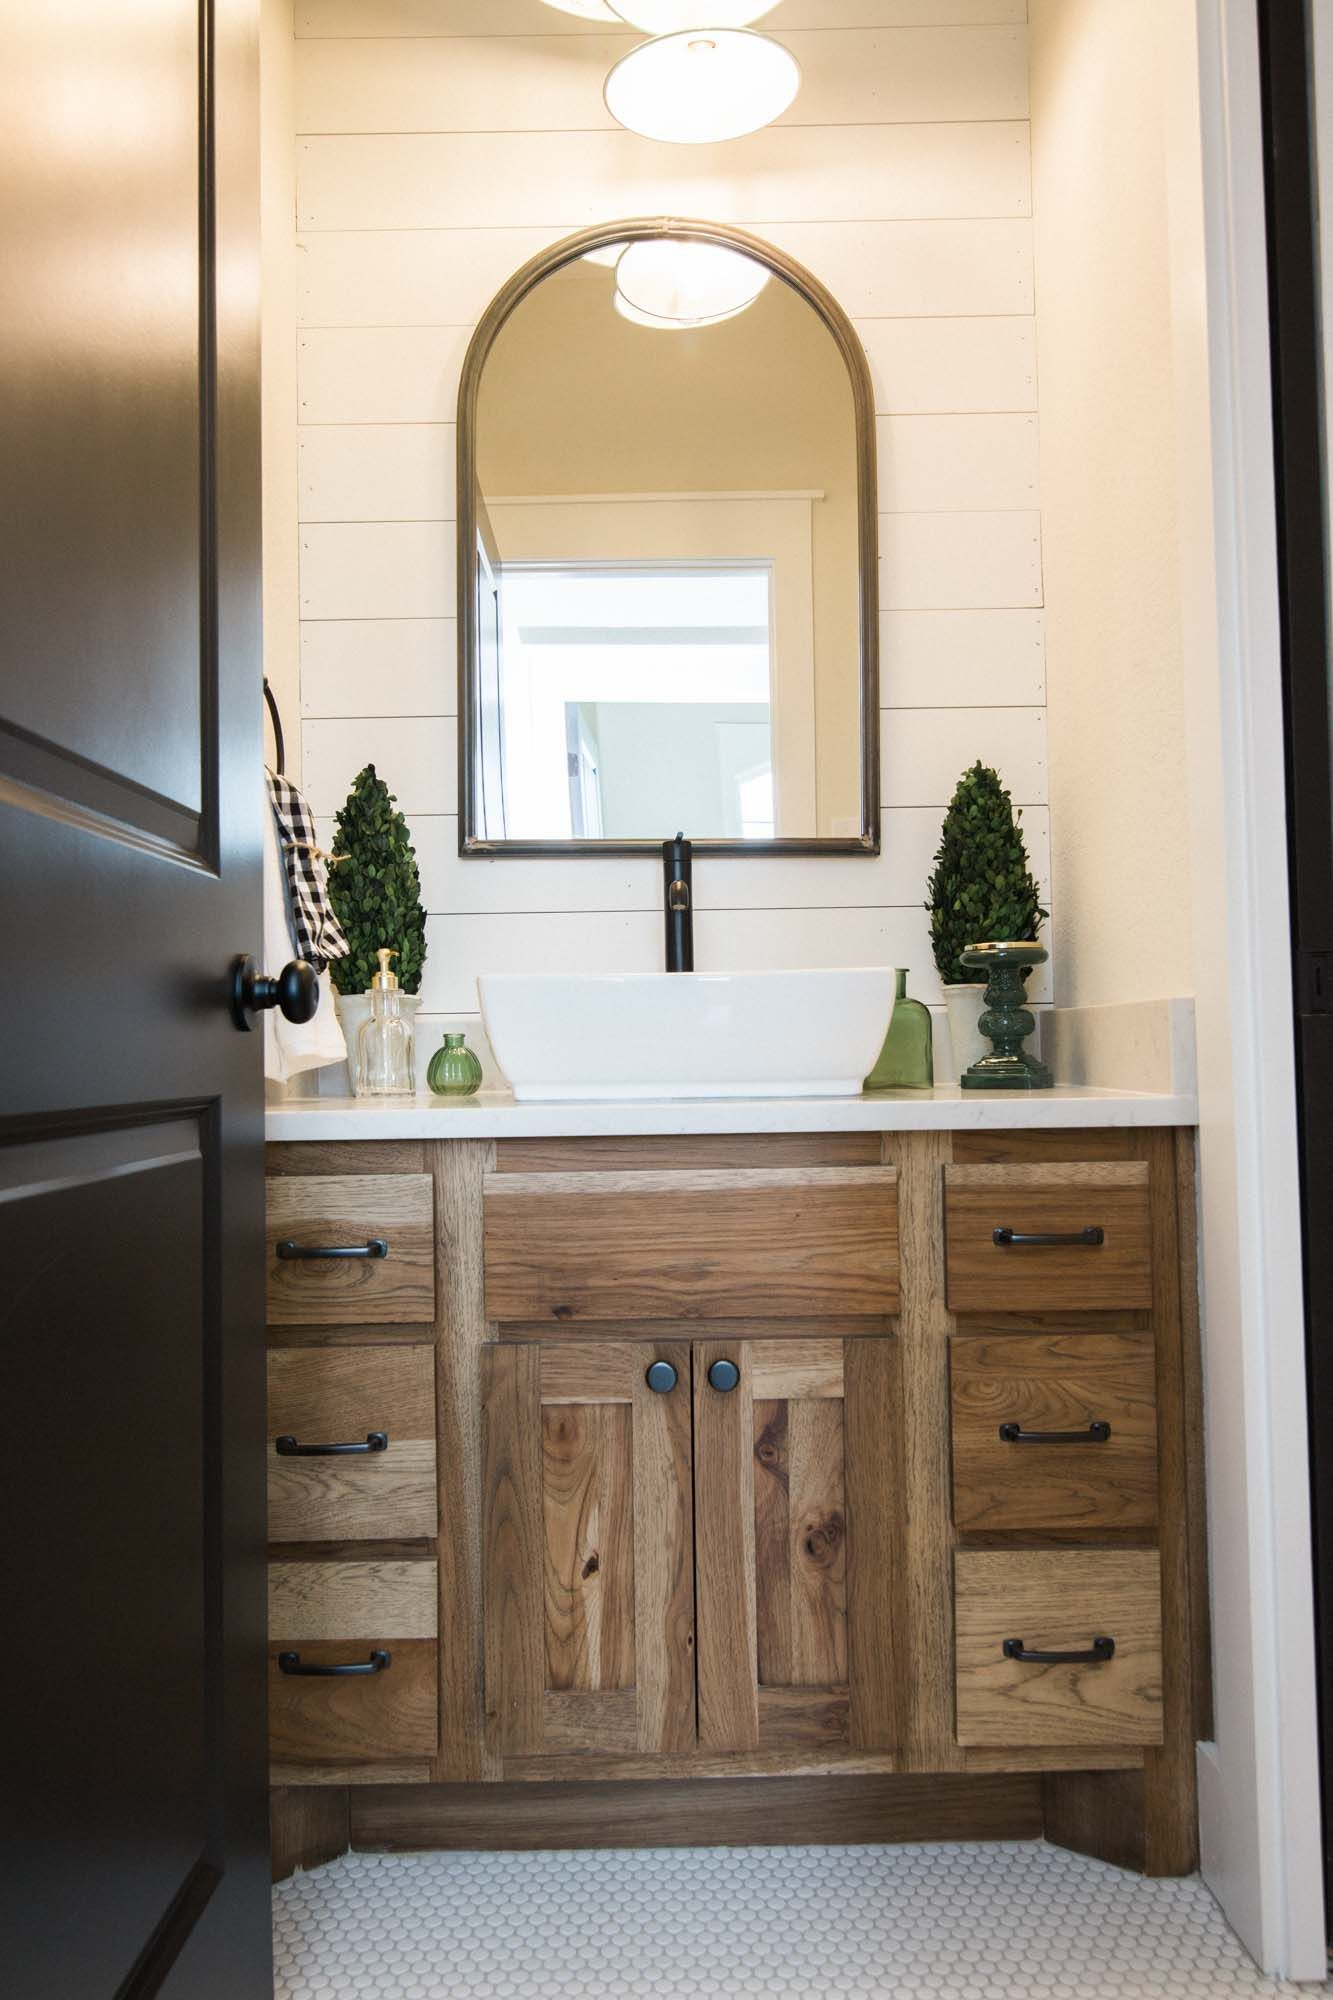 Bathroom inspiration with white shiplap and light stained